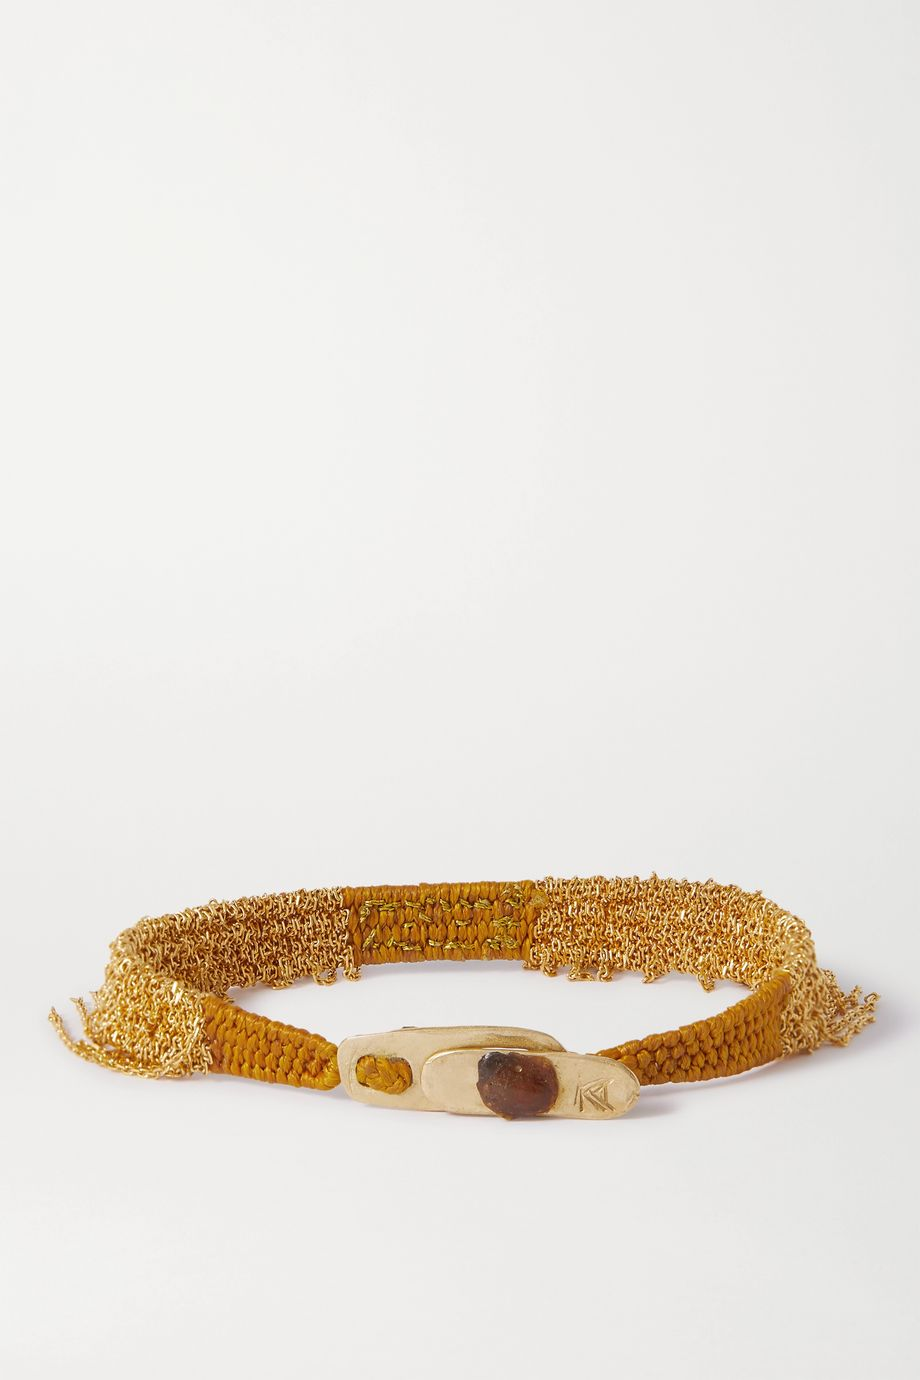 Katia Alpha Beaded woven cord and gold vermeil bracelet